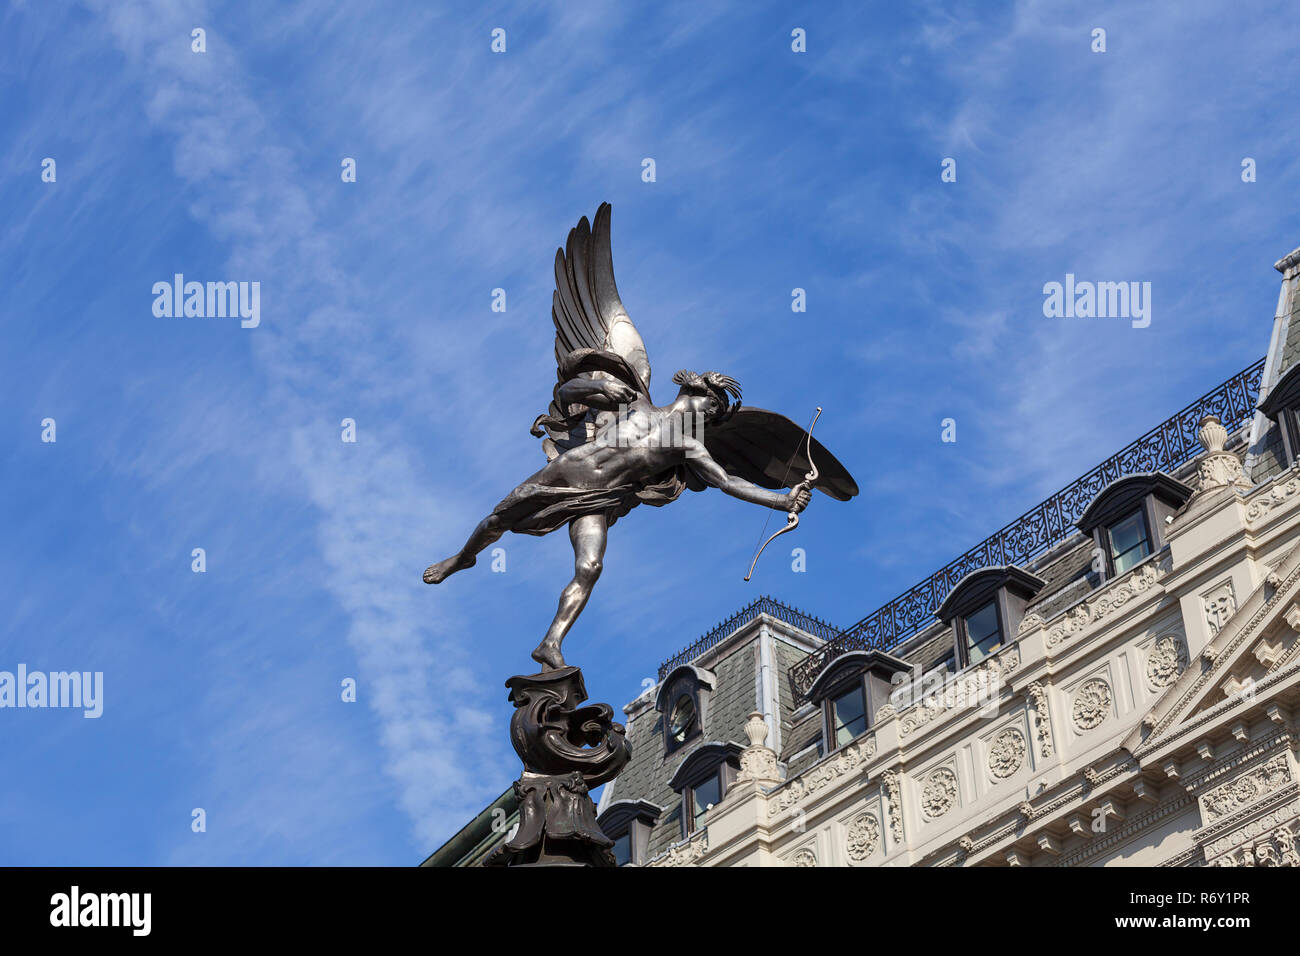 Shaftesbury Memorial Fountain, statue of a mythological figure Anteros, Piccadilly Circus, London, United Kingdom - Stock Image